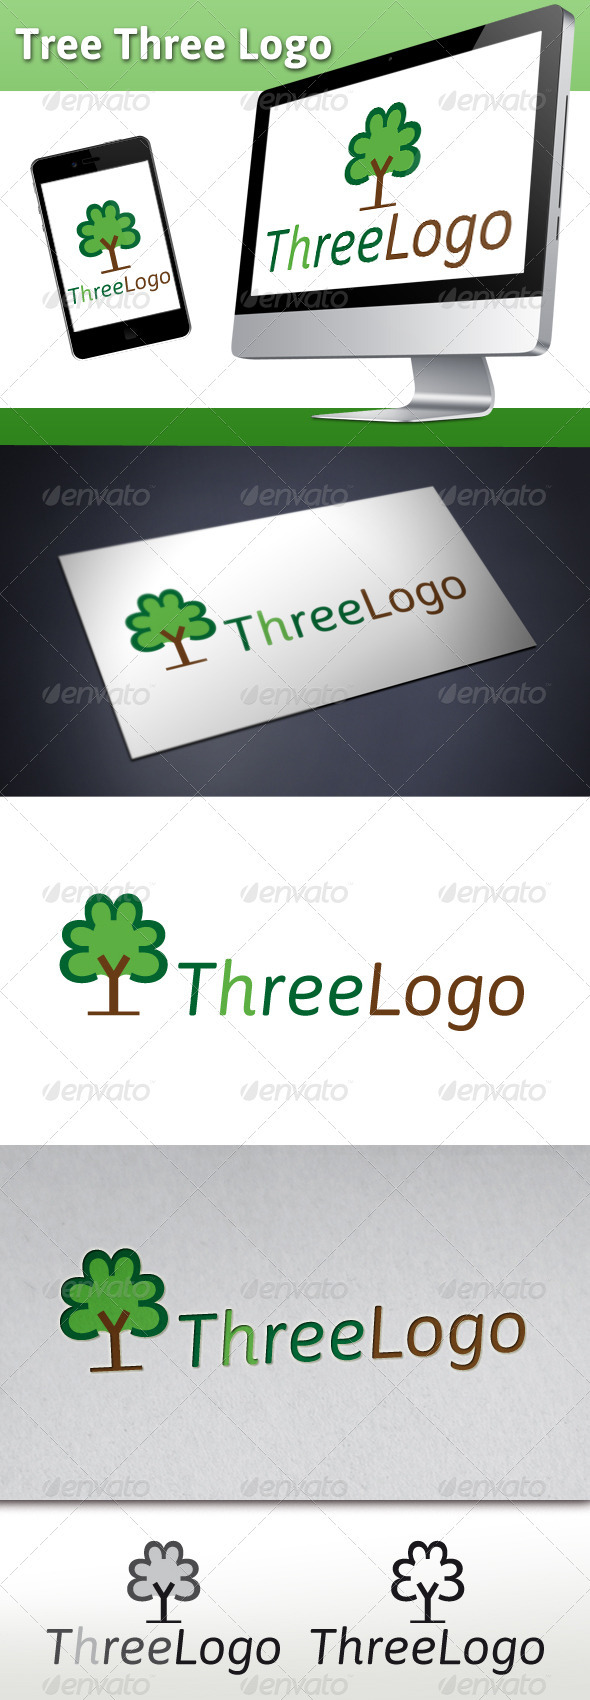 GraphicRiver Tree Three Logo 3414583